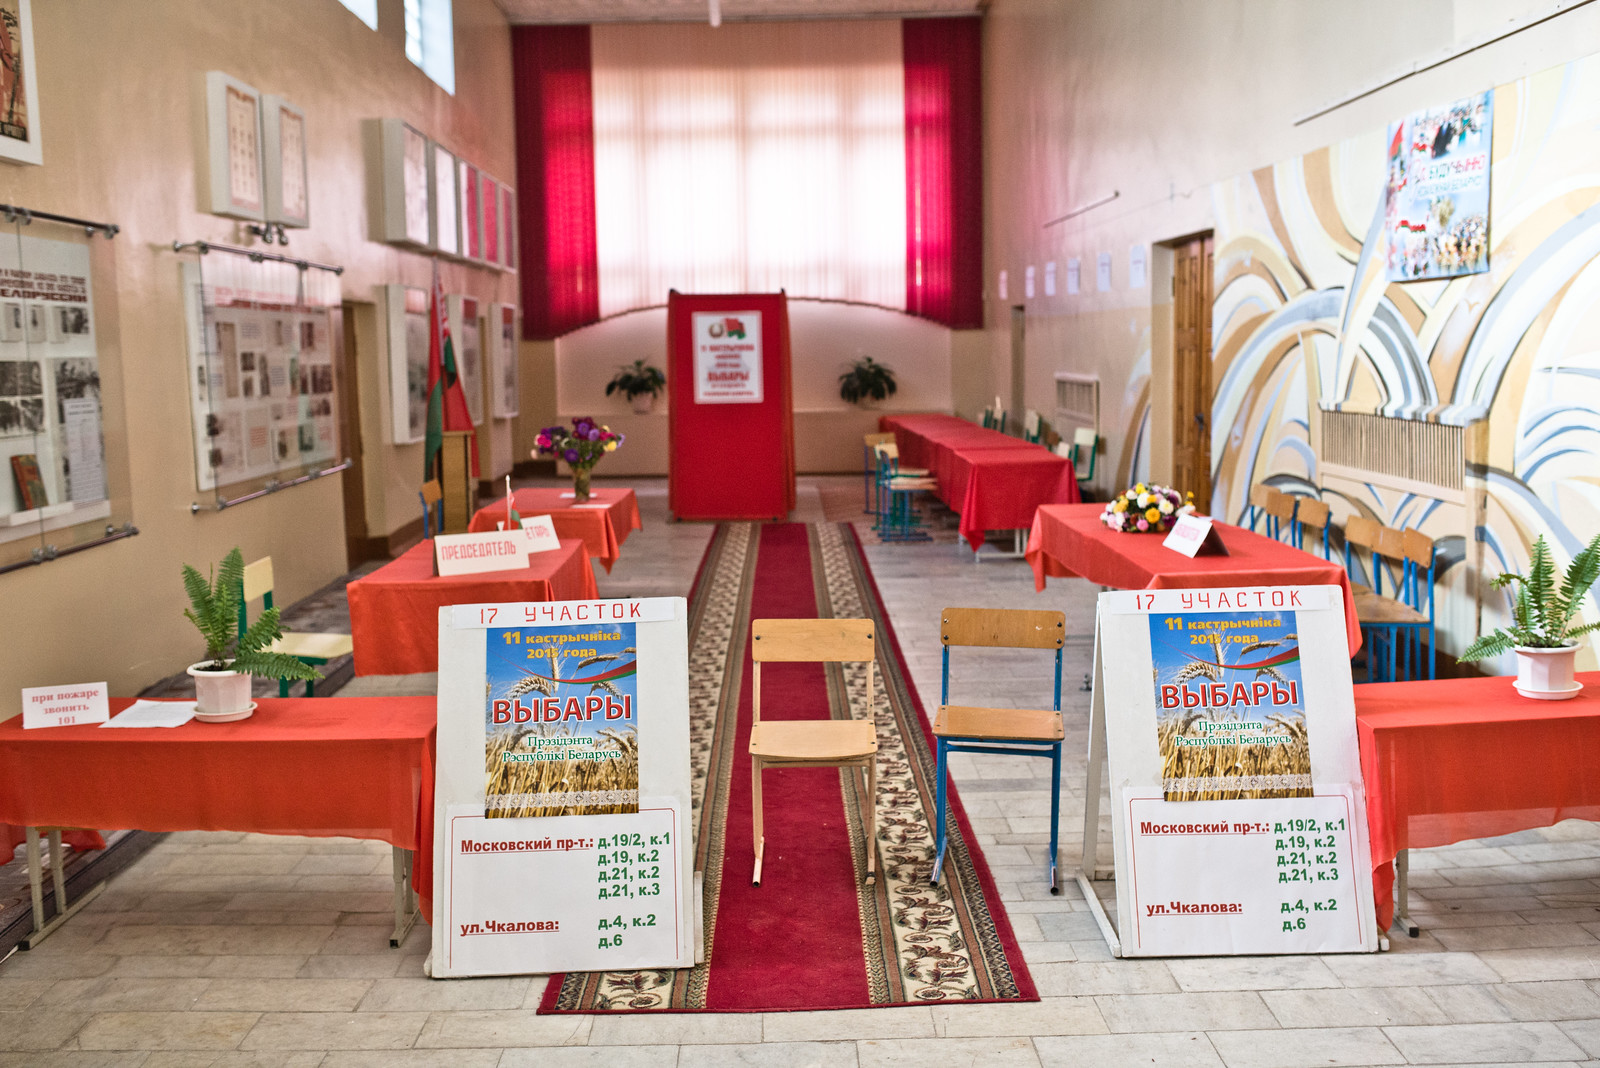 Polling station in Vitebsk